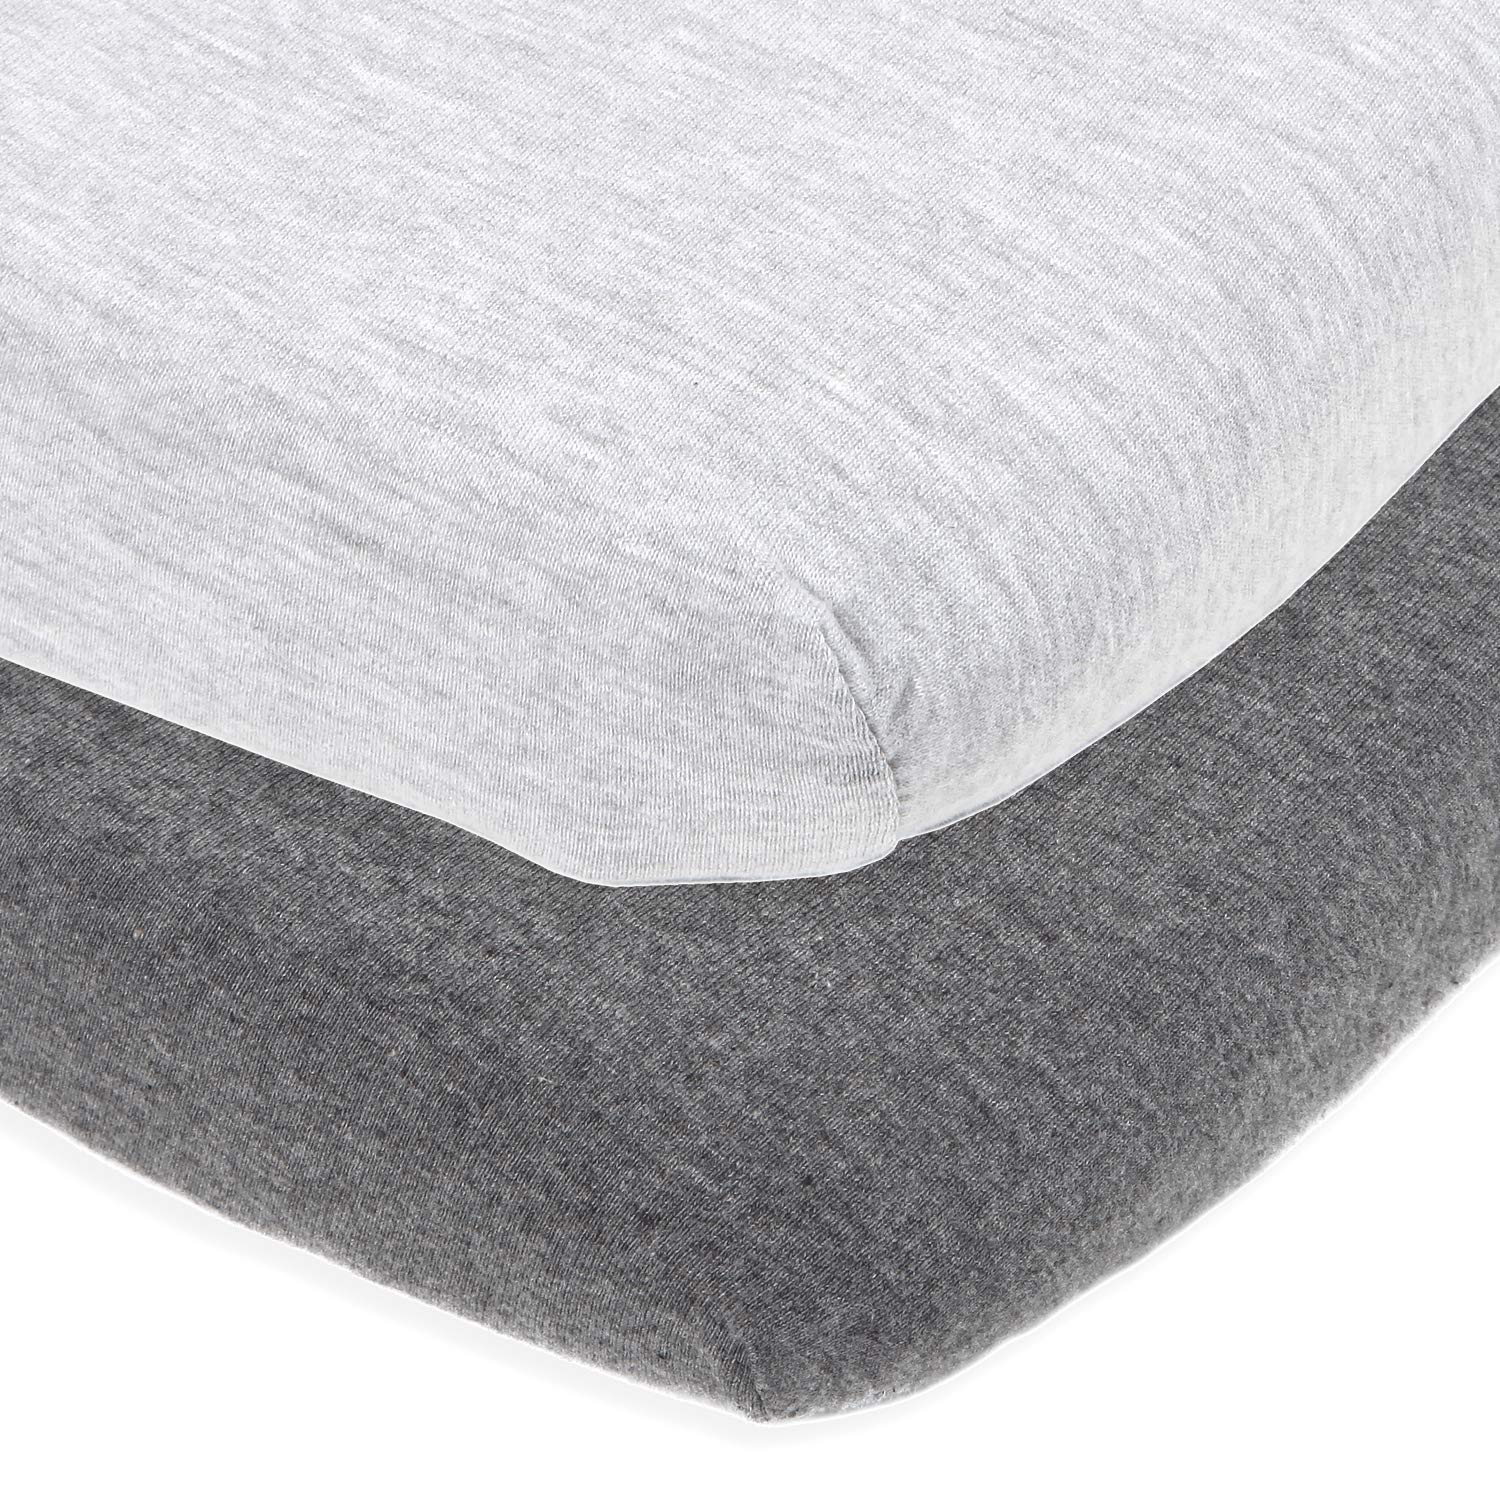 Cuddly Cubs Bassinet Sheets Set Easy to Put On Arms Reach Versatile, Chicco Lullago, Halo bassinest and Many Other Oval, Rectangle Shape Bassinet Pads | 100% Jersey Knit Cotton | Heather Grey by Cuddly Cubs